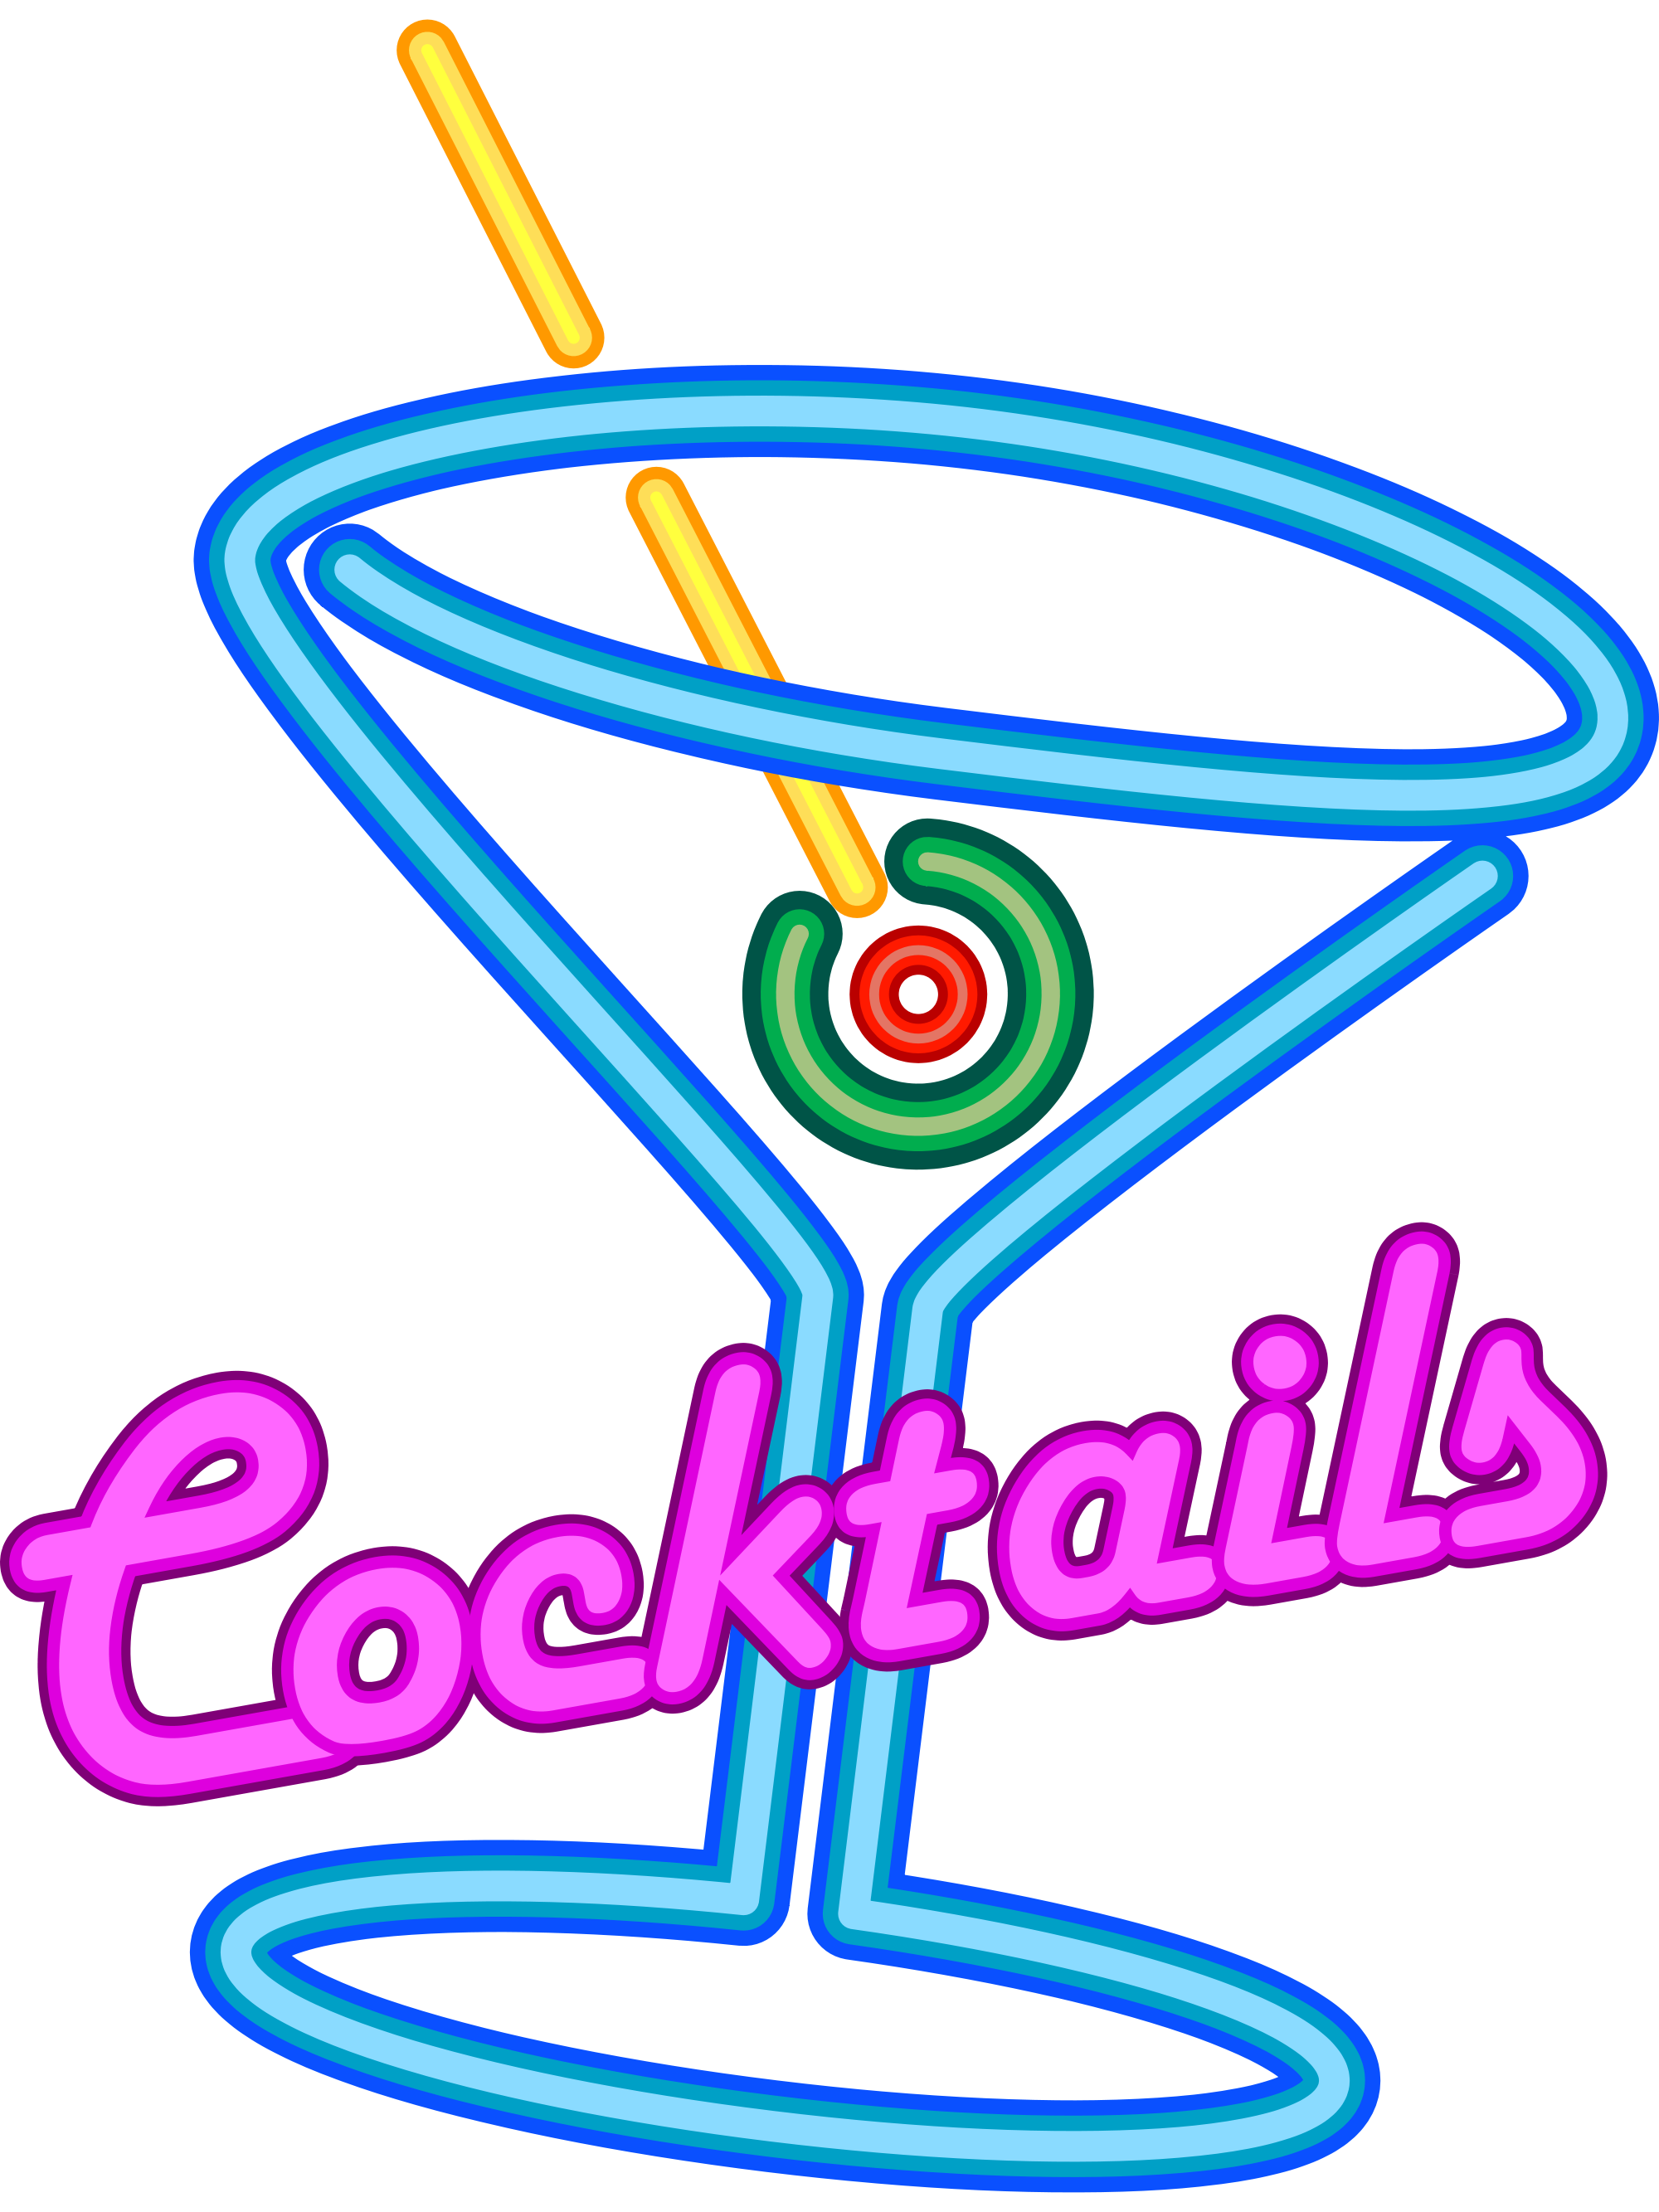 Cocktail svg #620, Download drawings